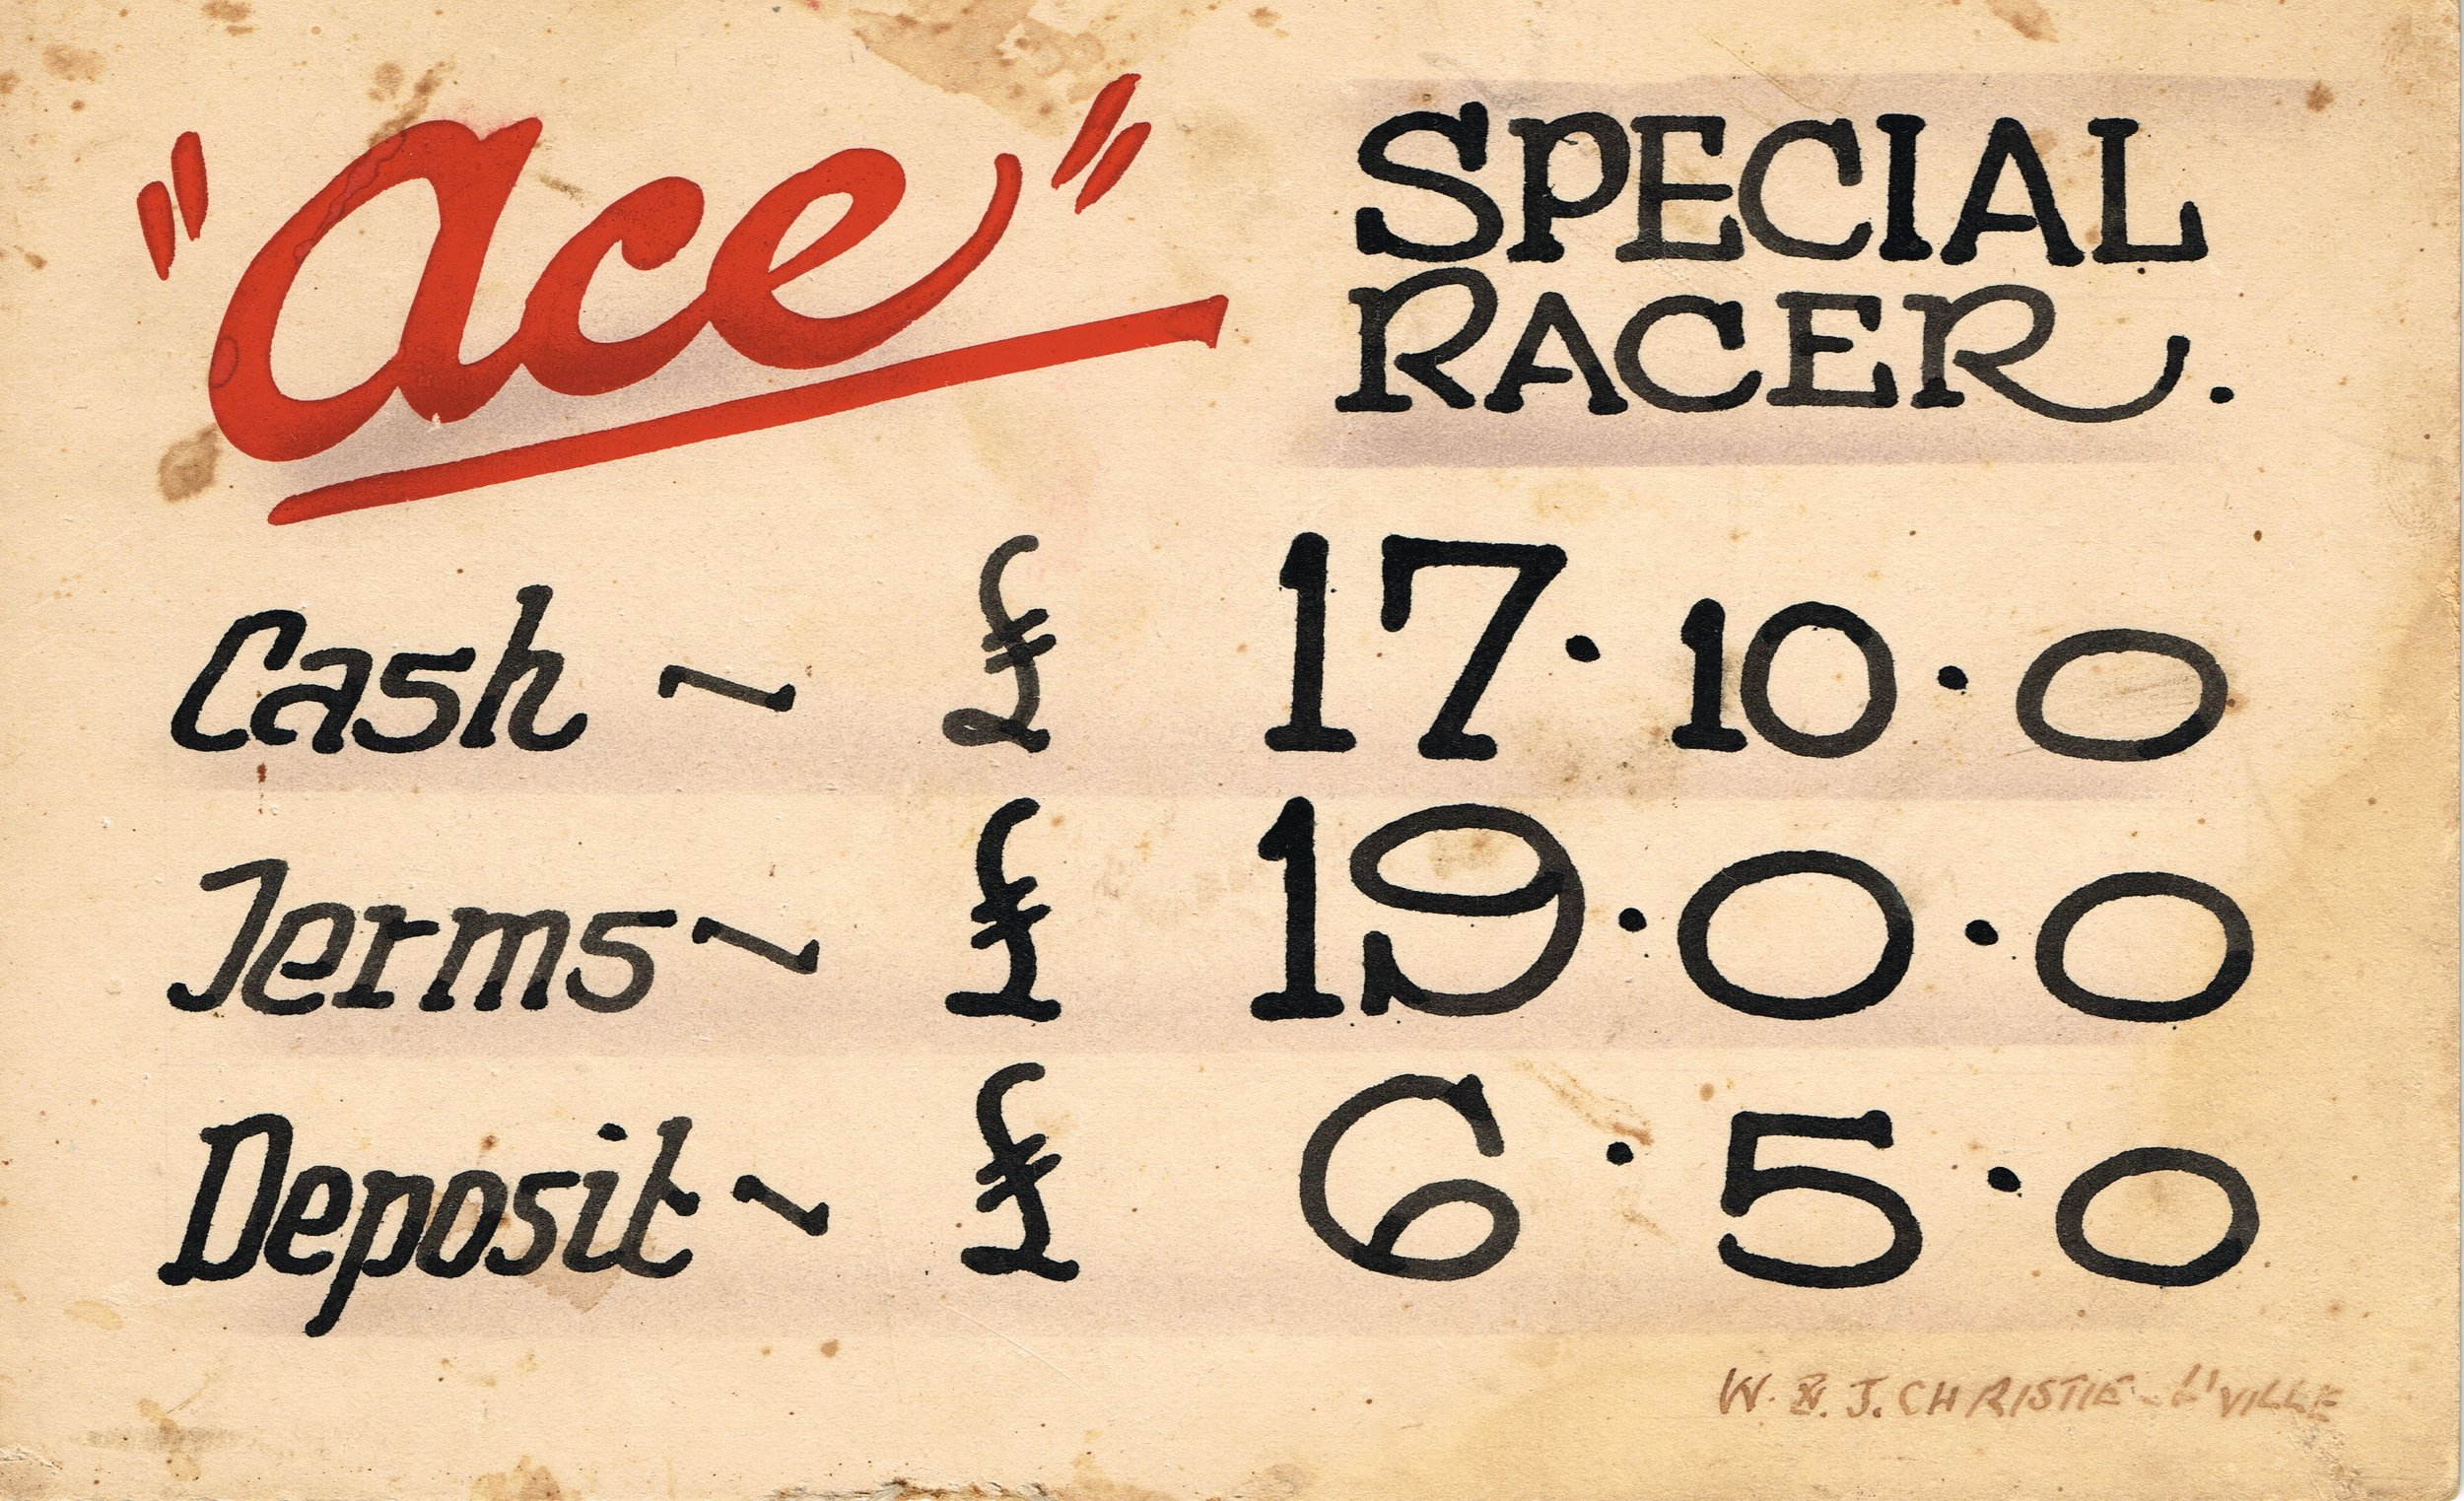 """Ace"" Special Racer   Ace - Signwriter unknown"